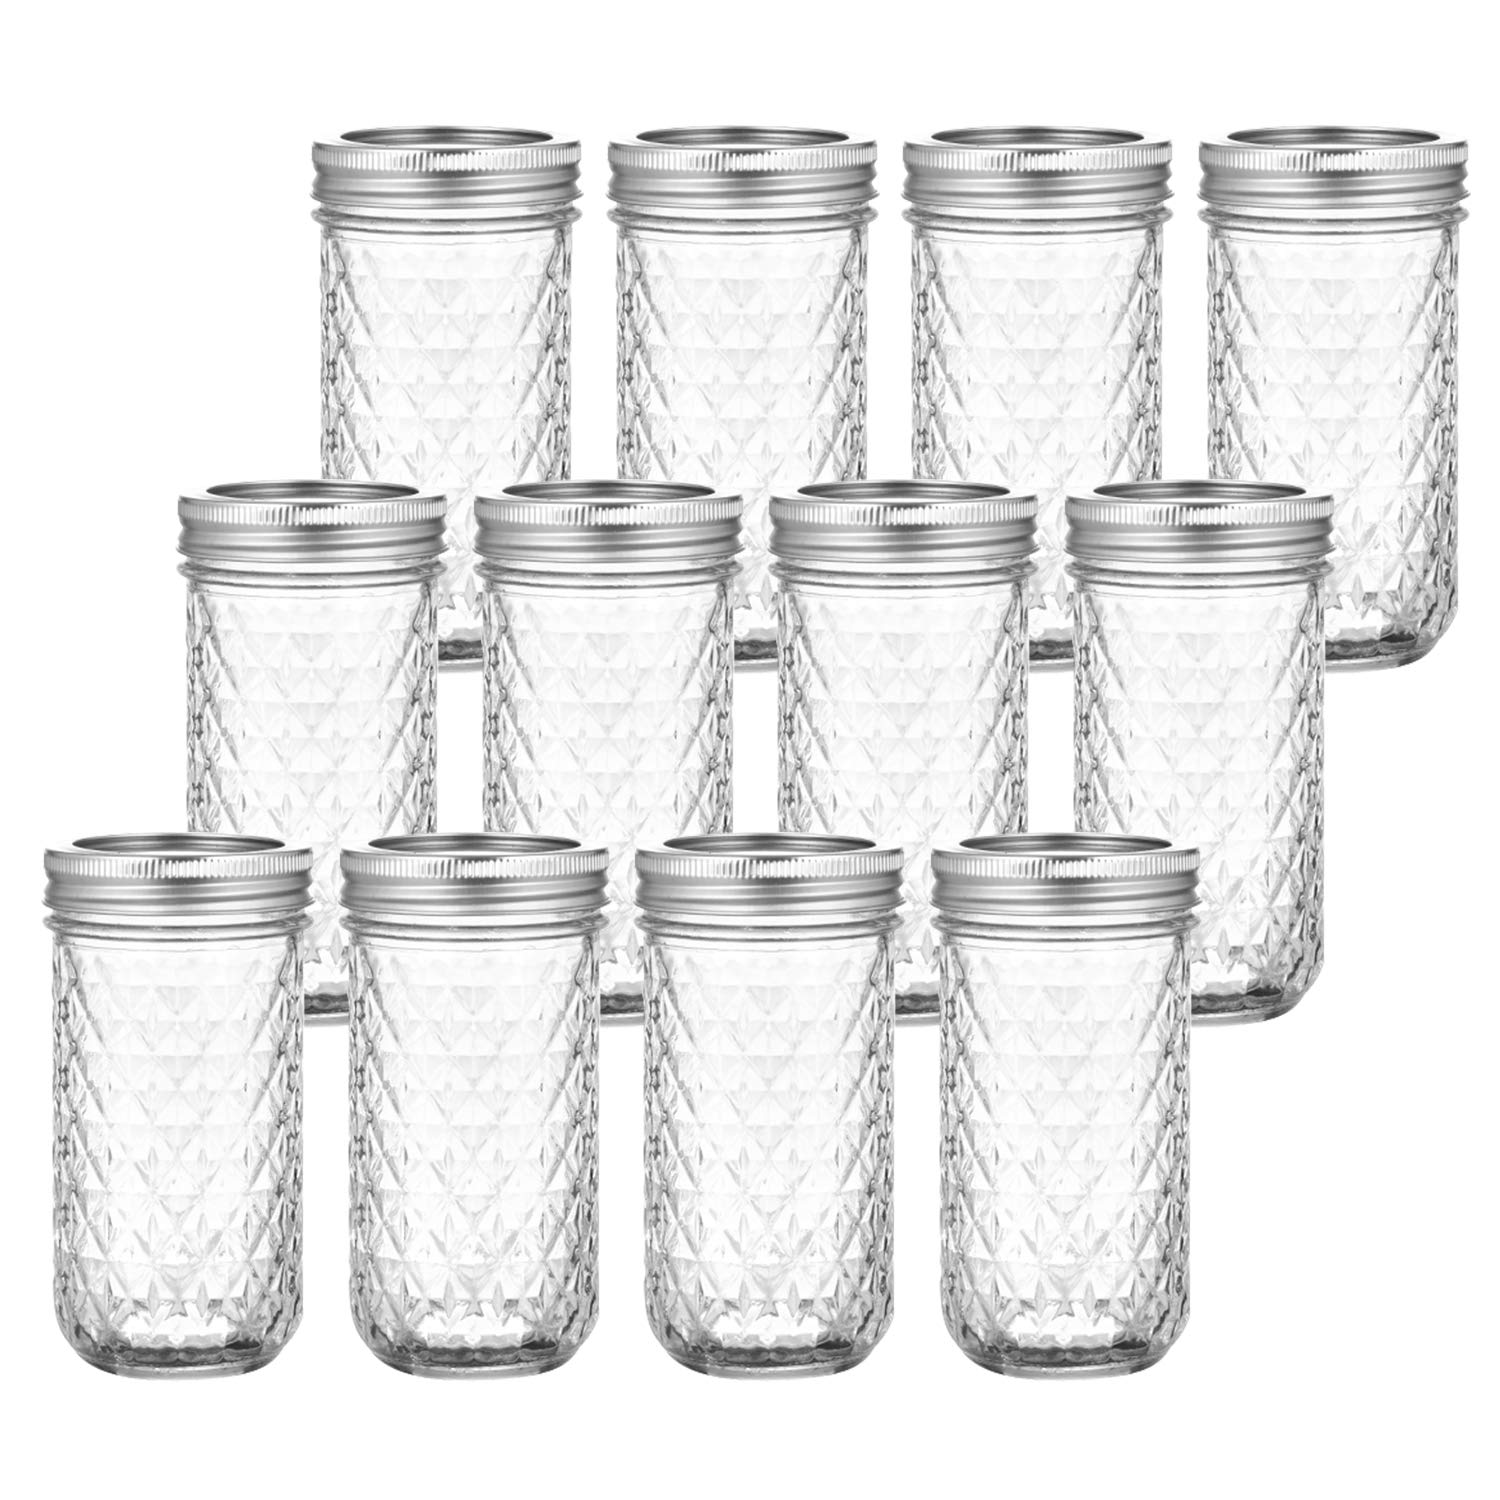 Tebery 12 Pack Mason Jars Canning Jars 12 OZ Jelly Jars With Regular Lids and Bands For Canning, Freezing, Preserving, Beverages & Jar Decor